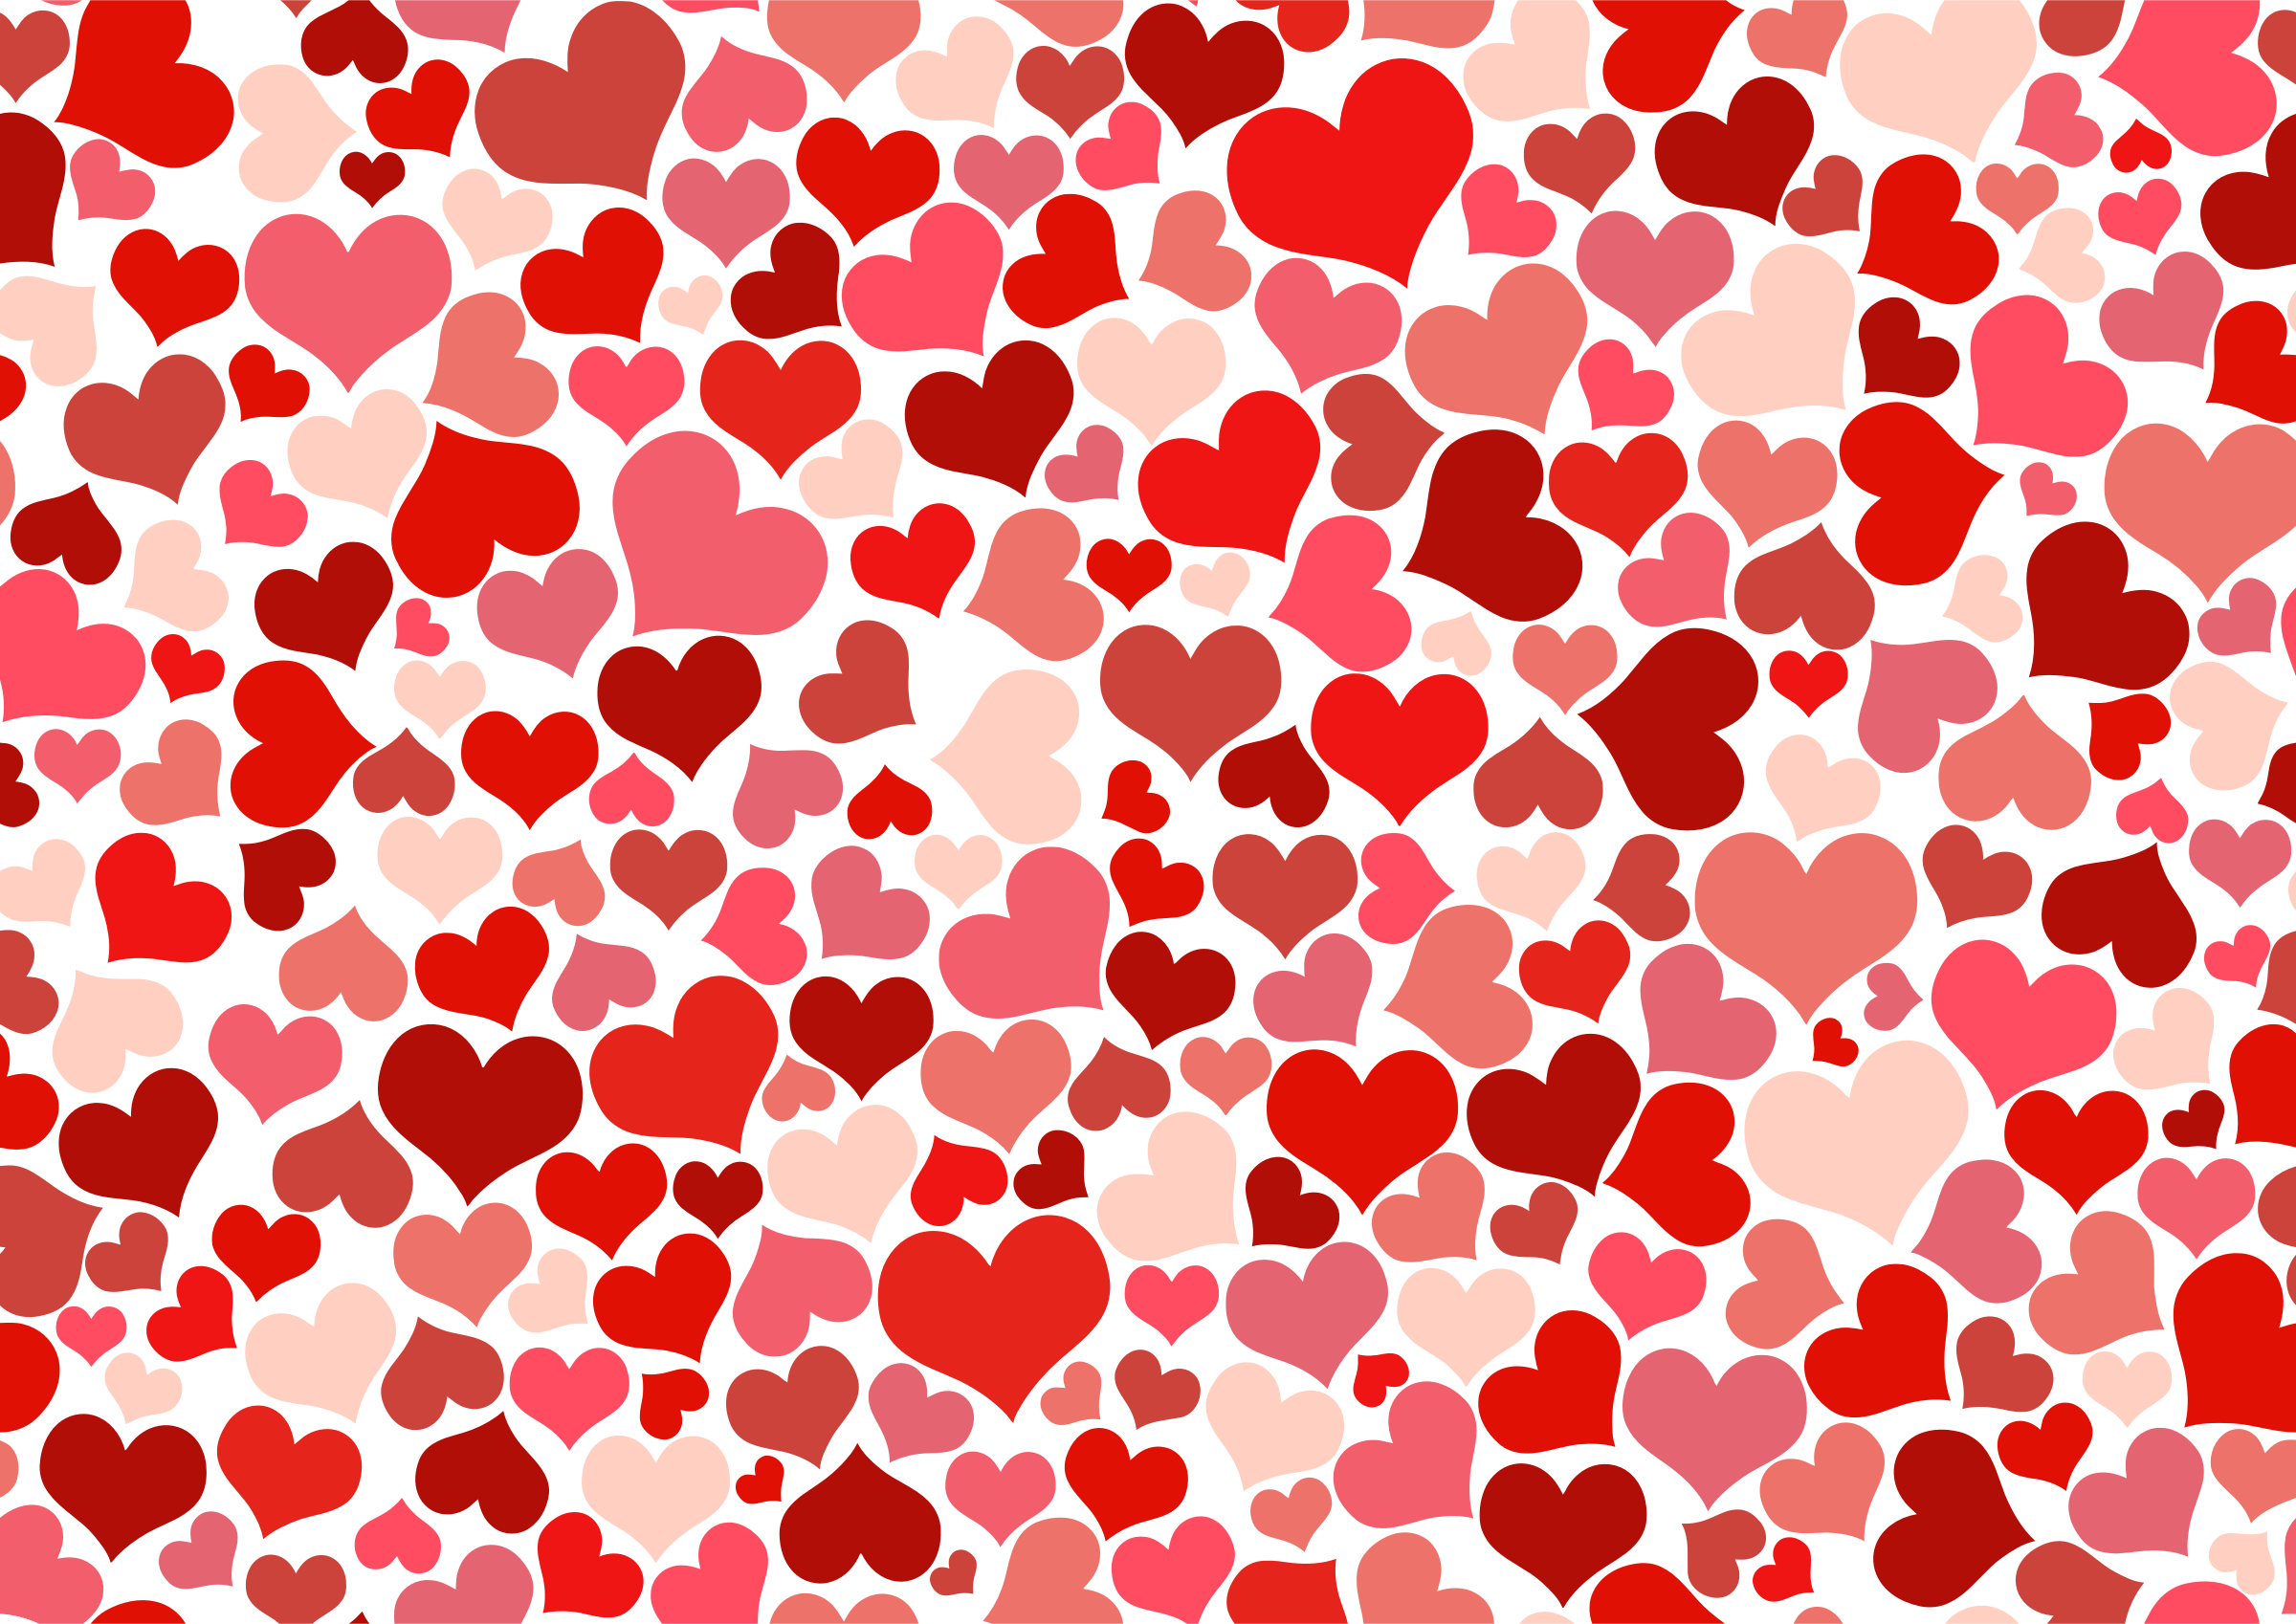 pink heart patterns background